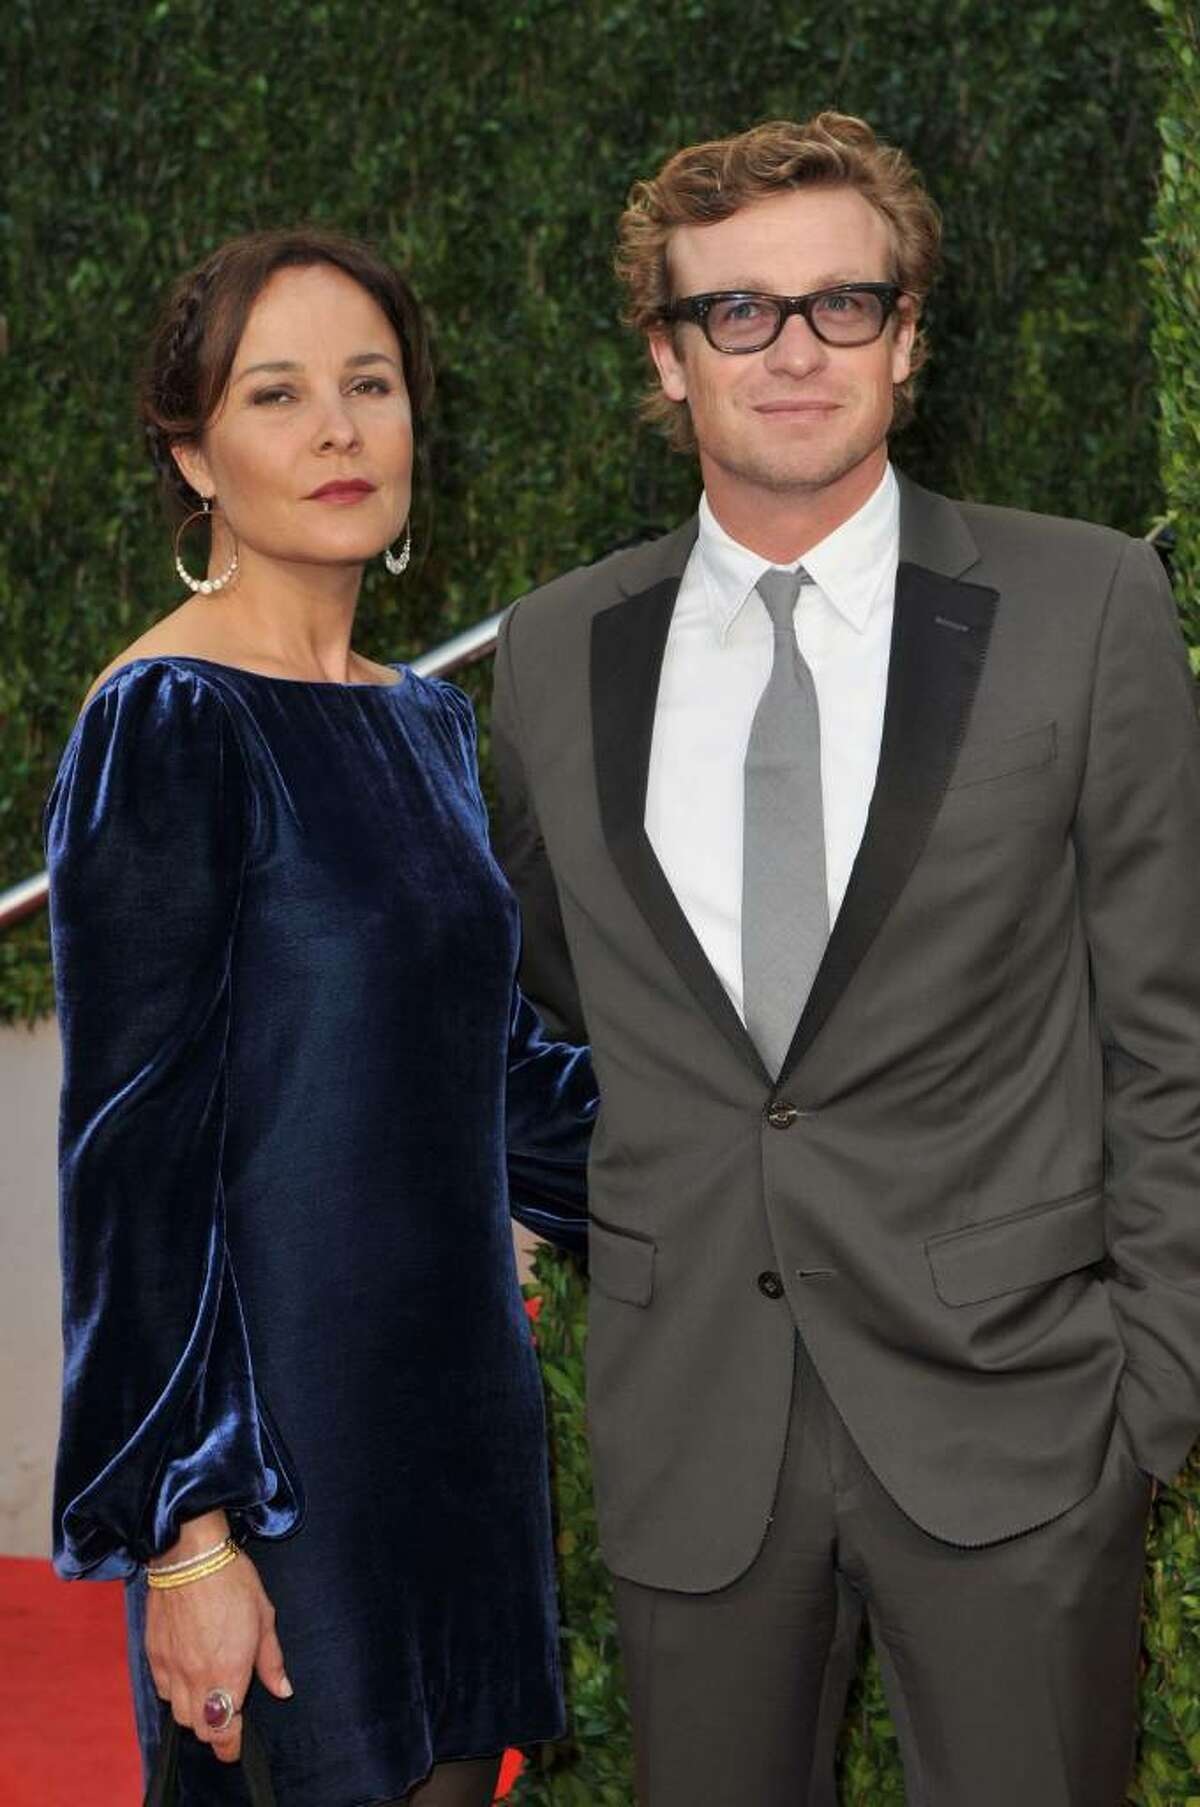 WEST HOLLYWOOD, CA - MARCH 07: Actor Simon Baker (R) and wife Rebecca Rigg arrive at the 2010 Vanity Fair Oscar Party hosted by Graydon Carter held at Sunset Tower on March 7, 2010 in West Hollywood, California. (Photo by Pascal Le Segretain/Getty Images) *** Local Caption *** Simon Baker;Rebecca Rigg